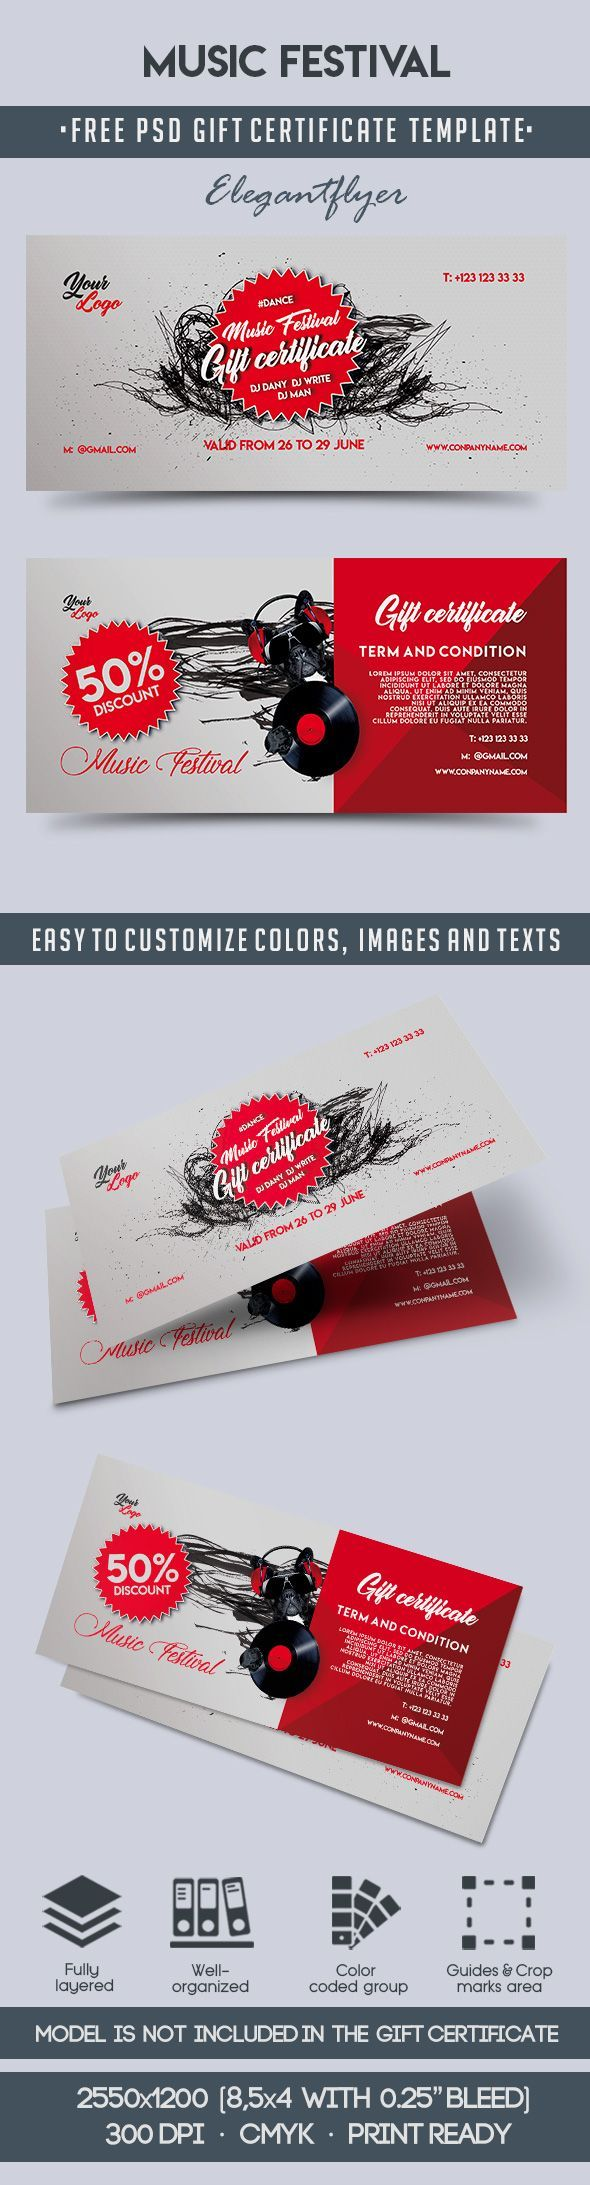 The 66 Best Free Gift Certificate Templates Images On Pinterest